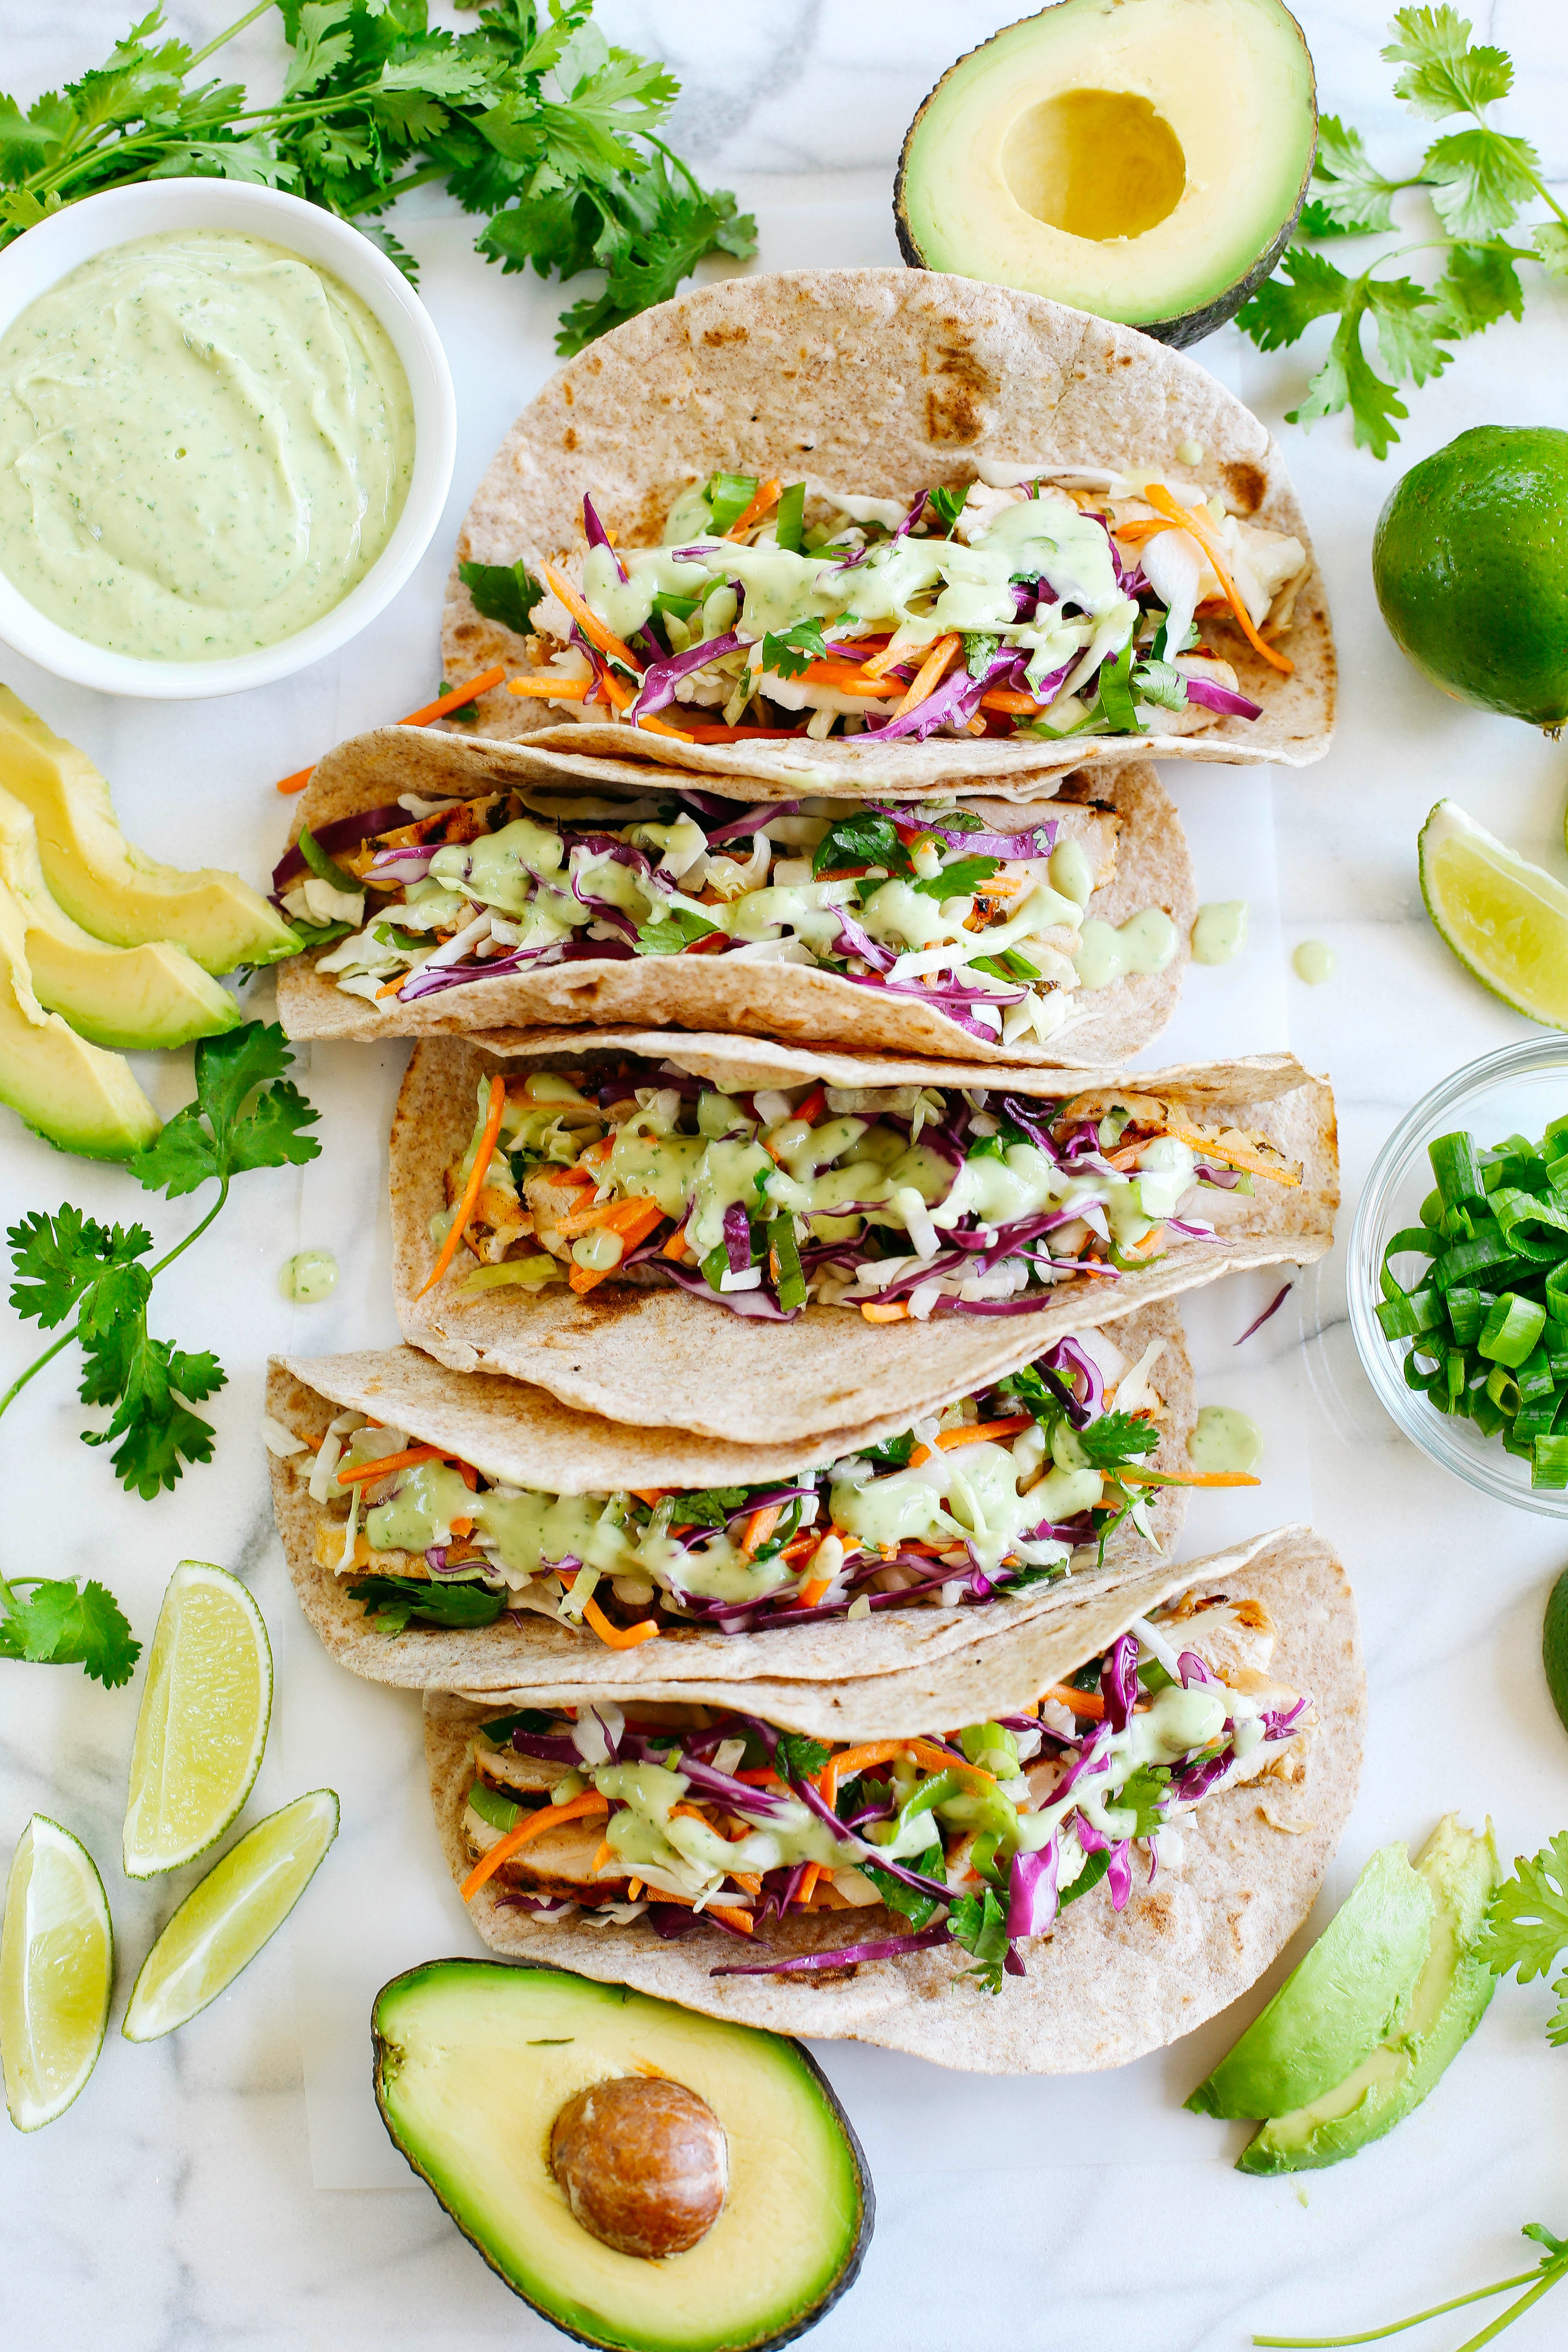 Cilantro Lime Chicken Tacos - Eat Yourself Skinny